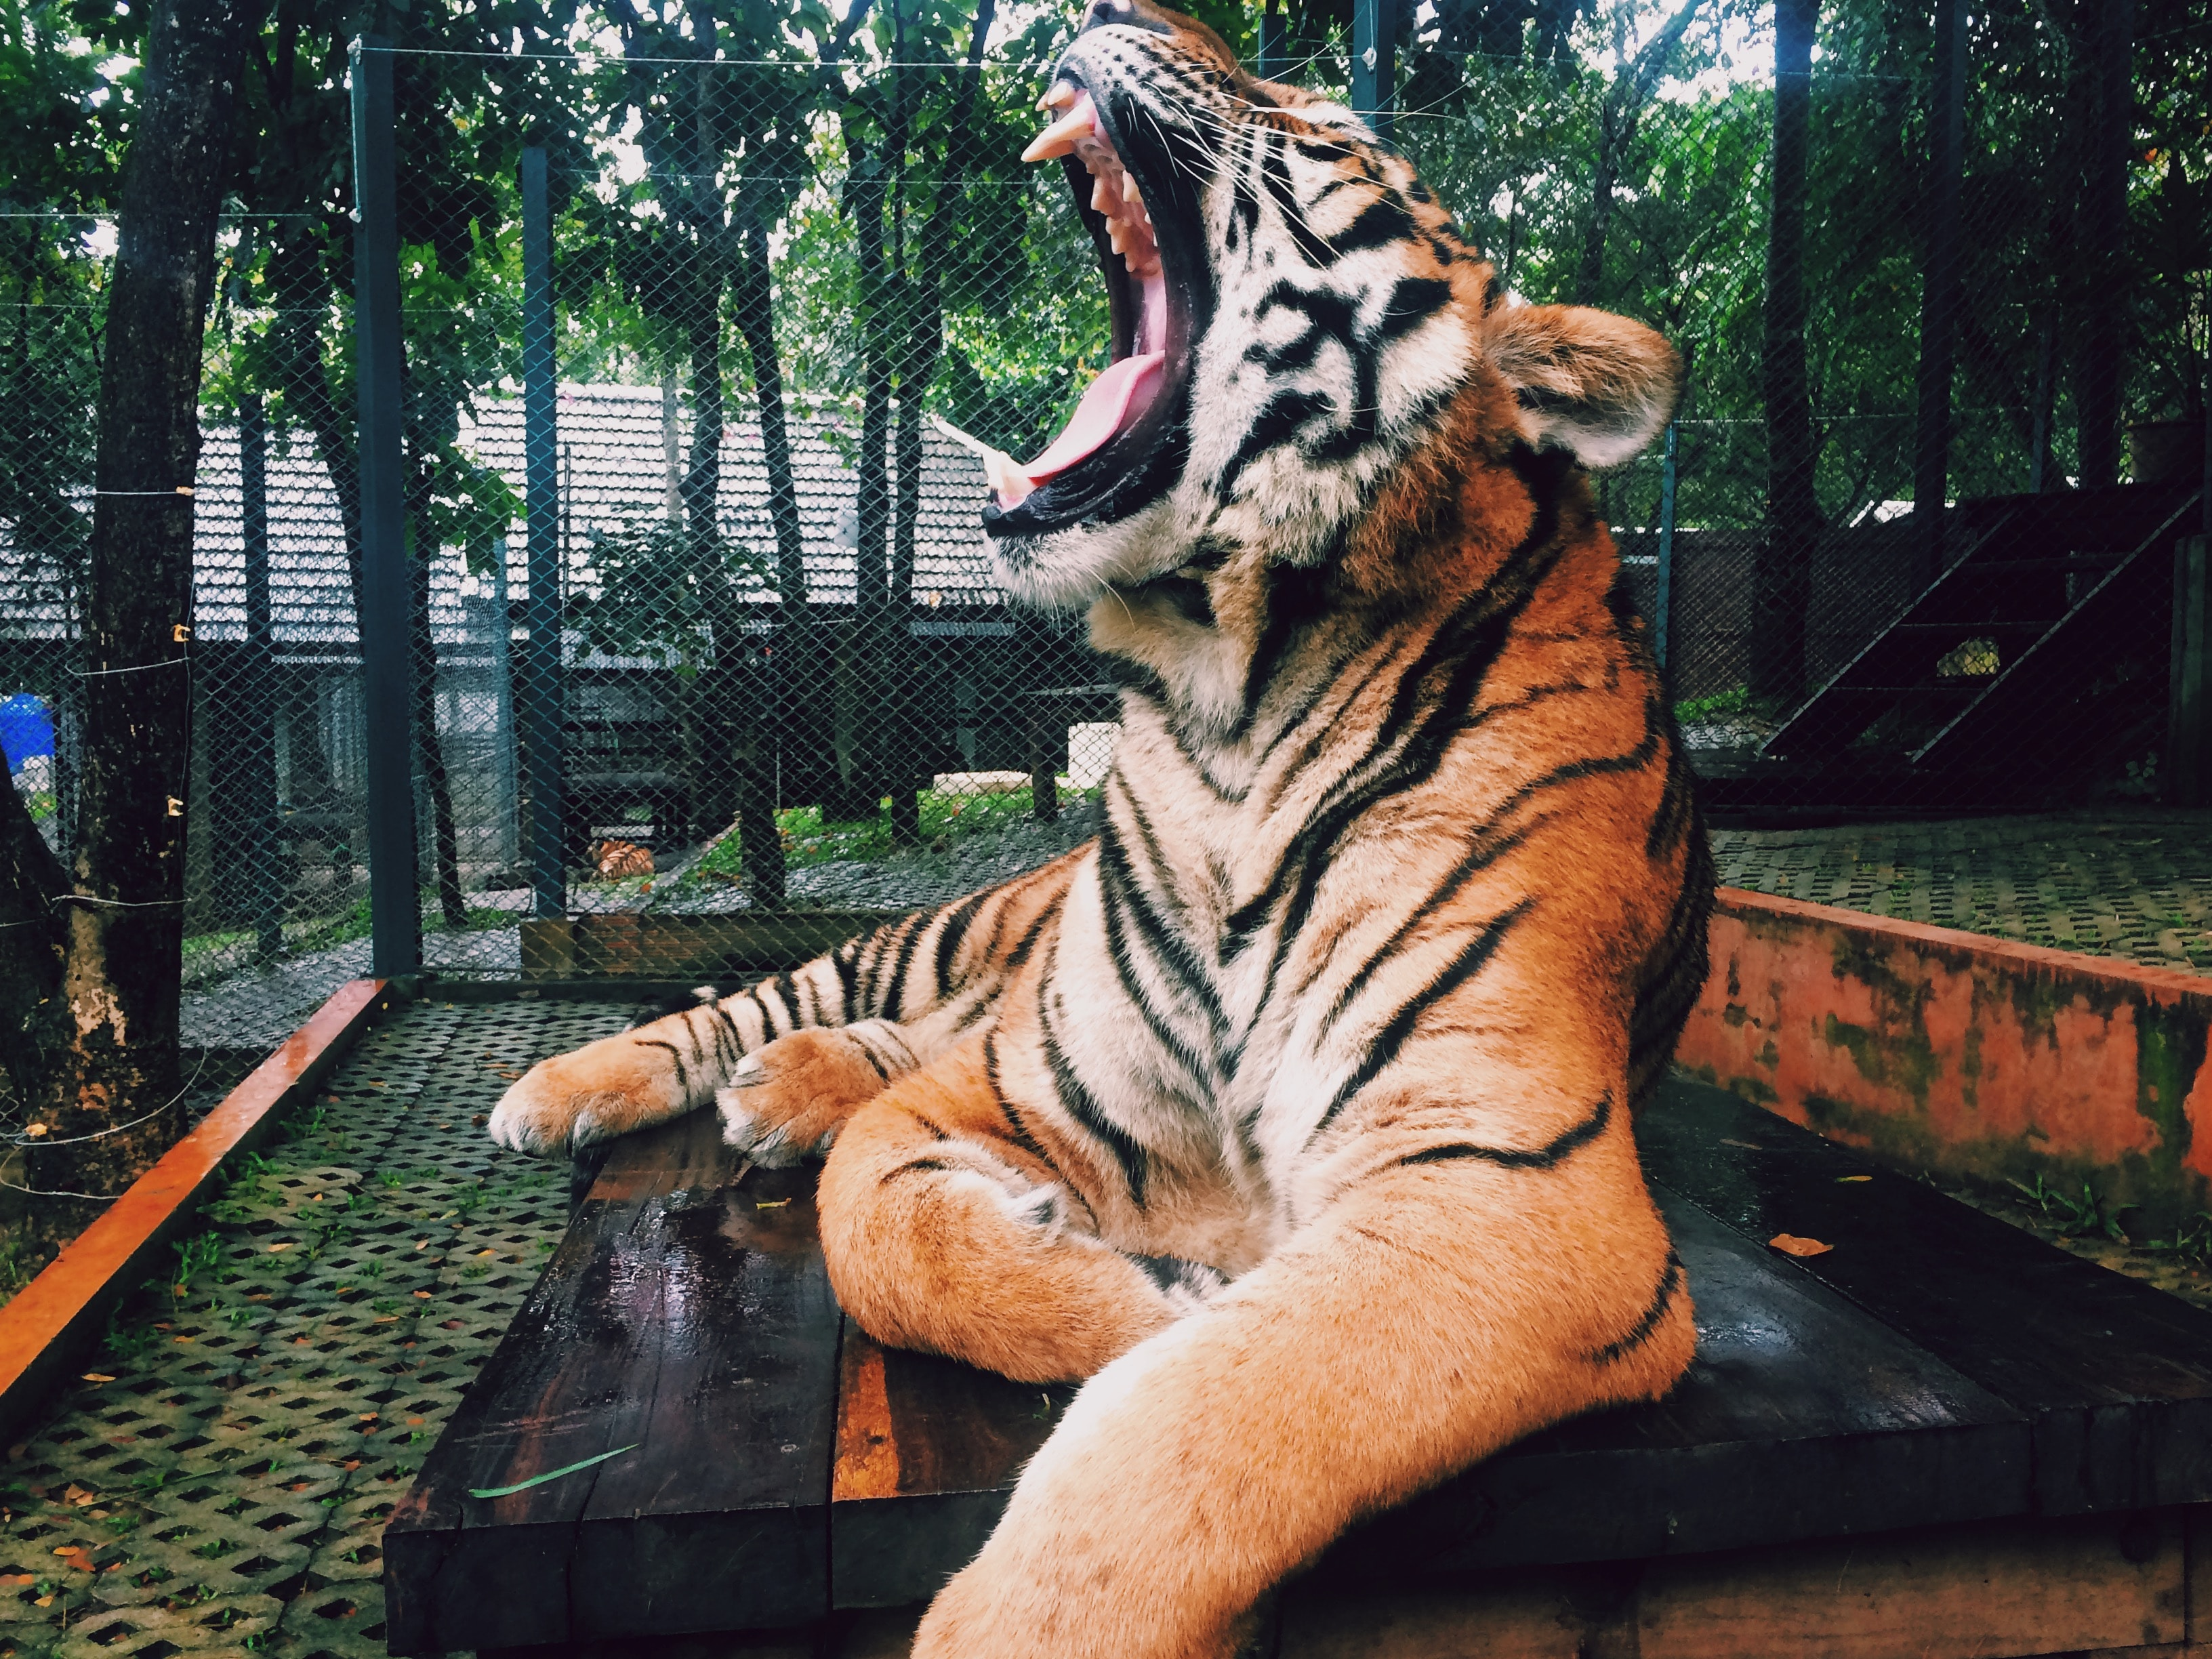 A roaring tiger at the zoo